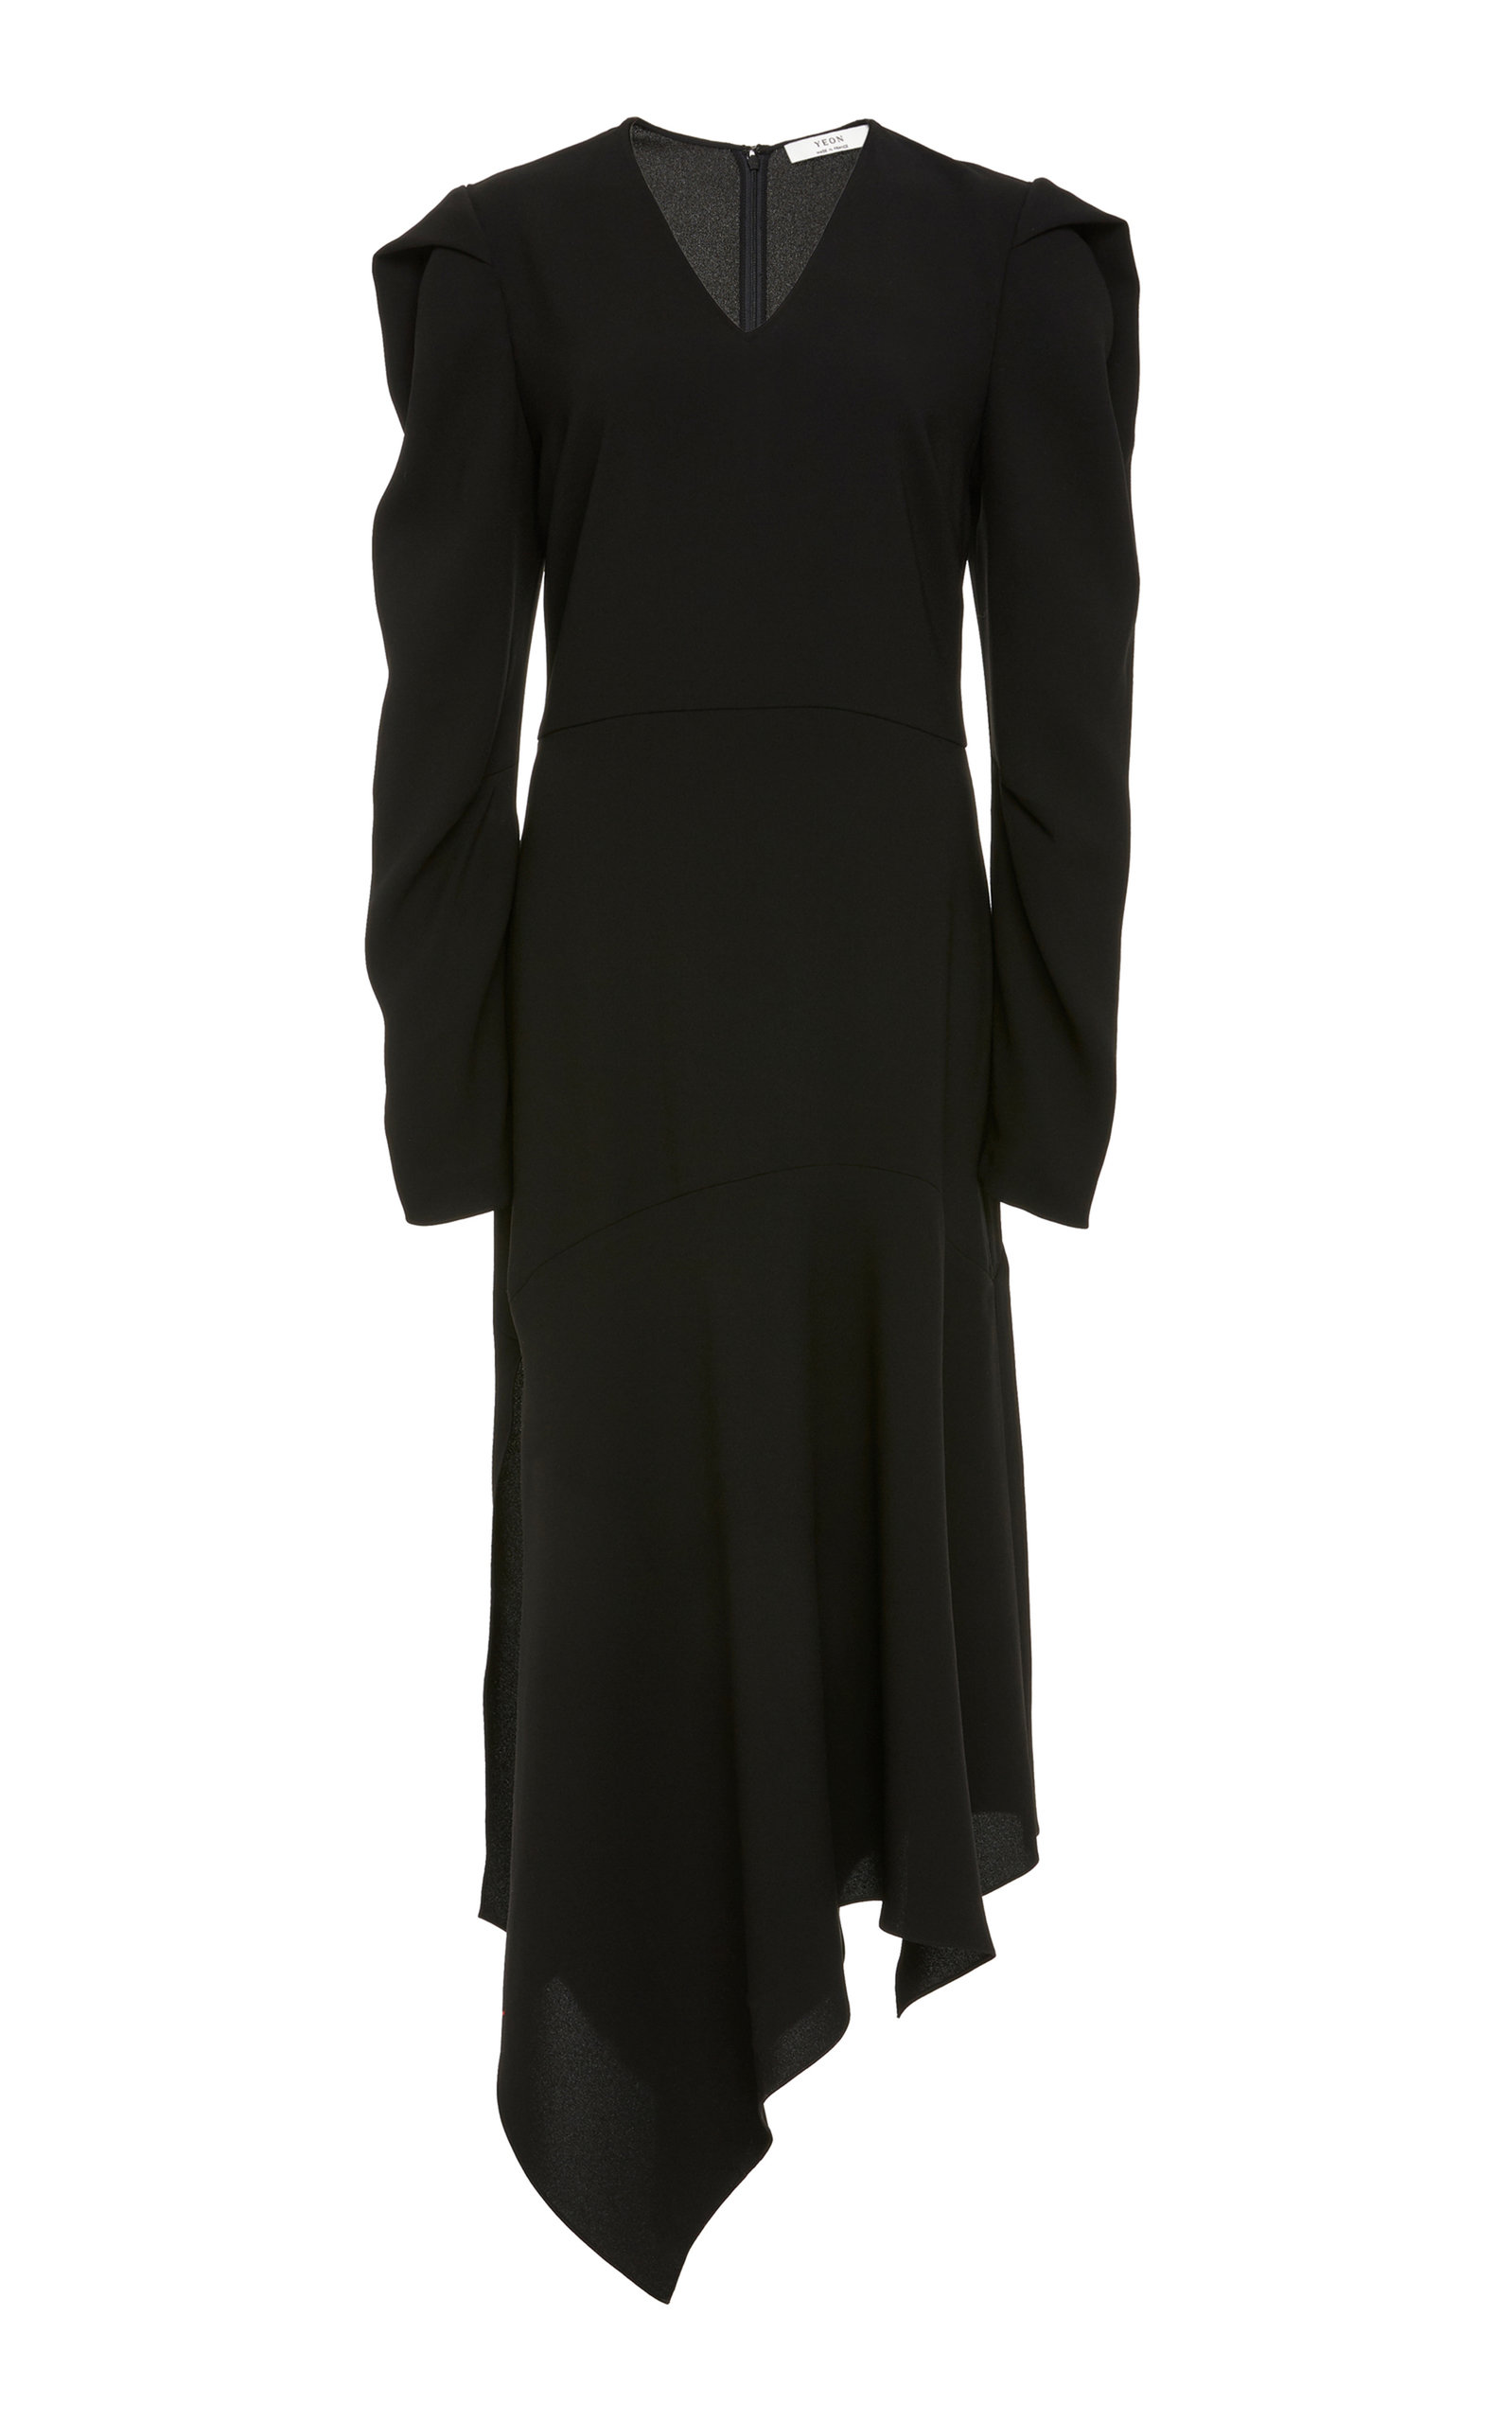 YEON M'O Exclusive Eudora Asymmetric Crepe Midi Dress in Black